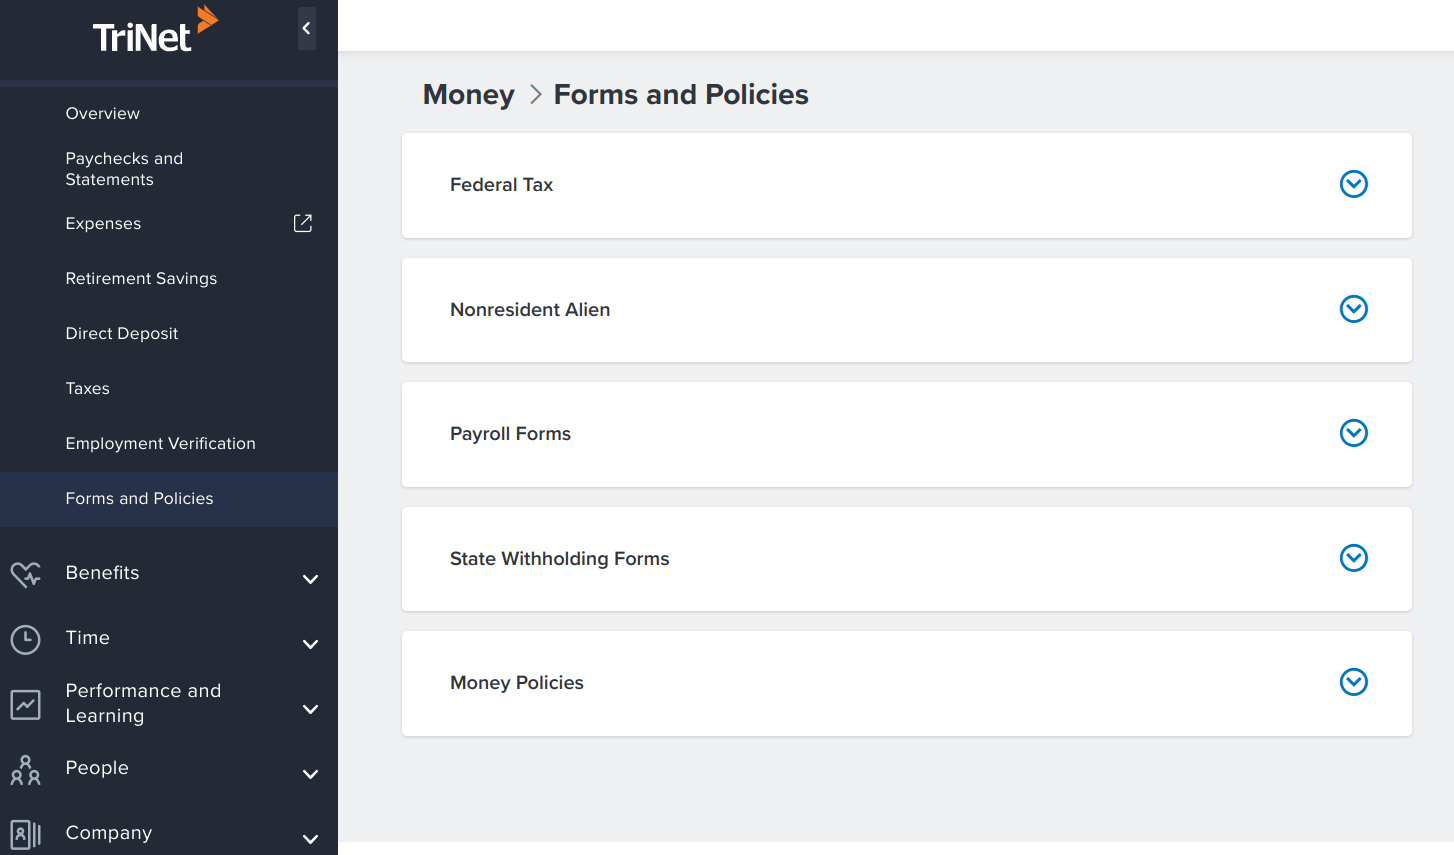 TriNet Forms and Policies page